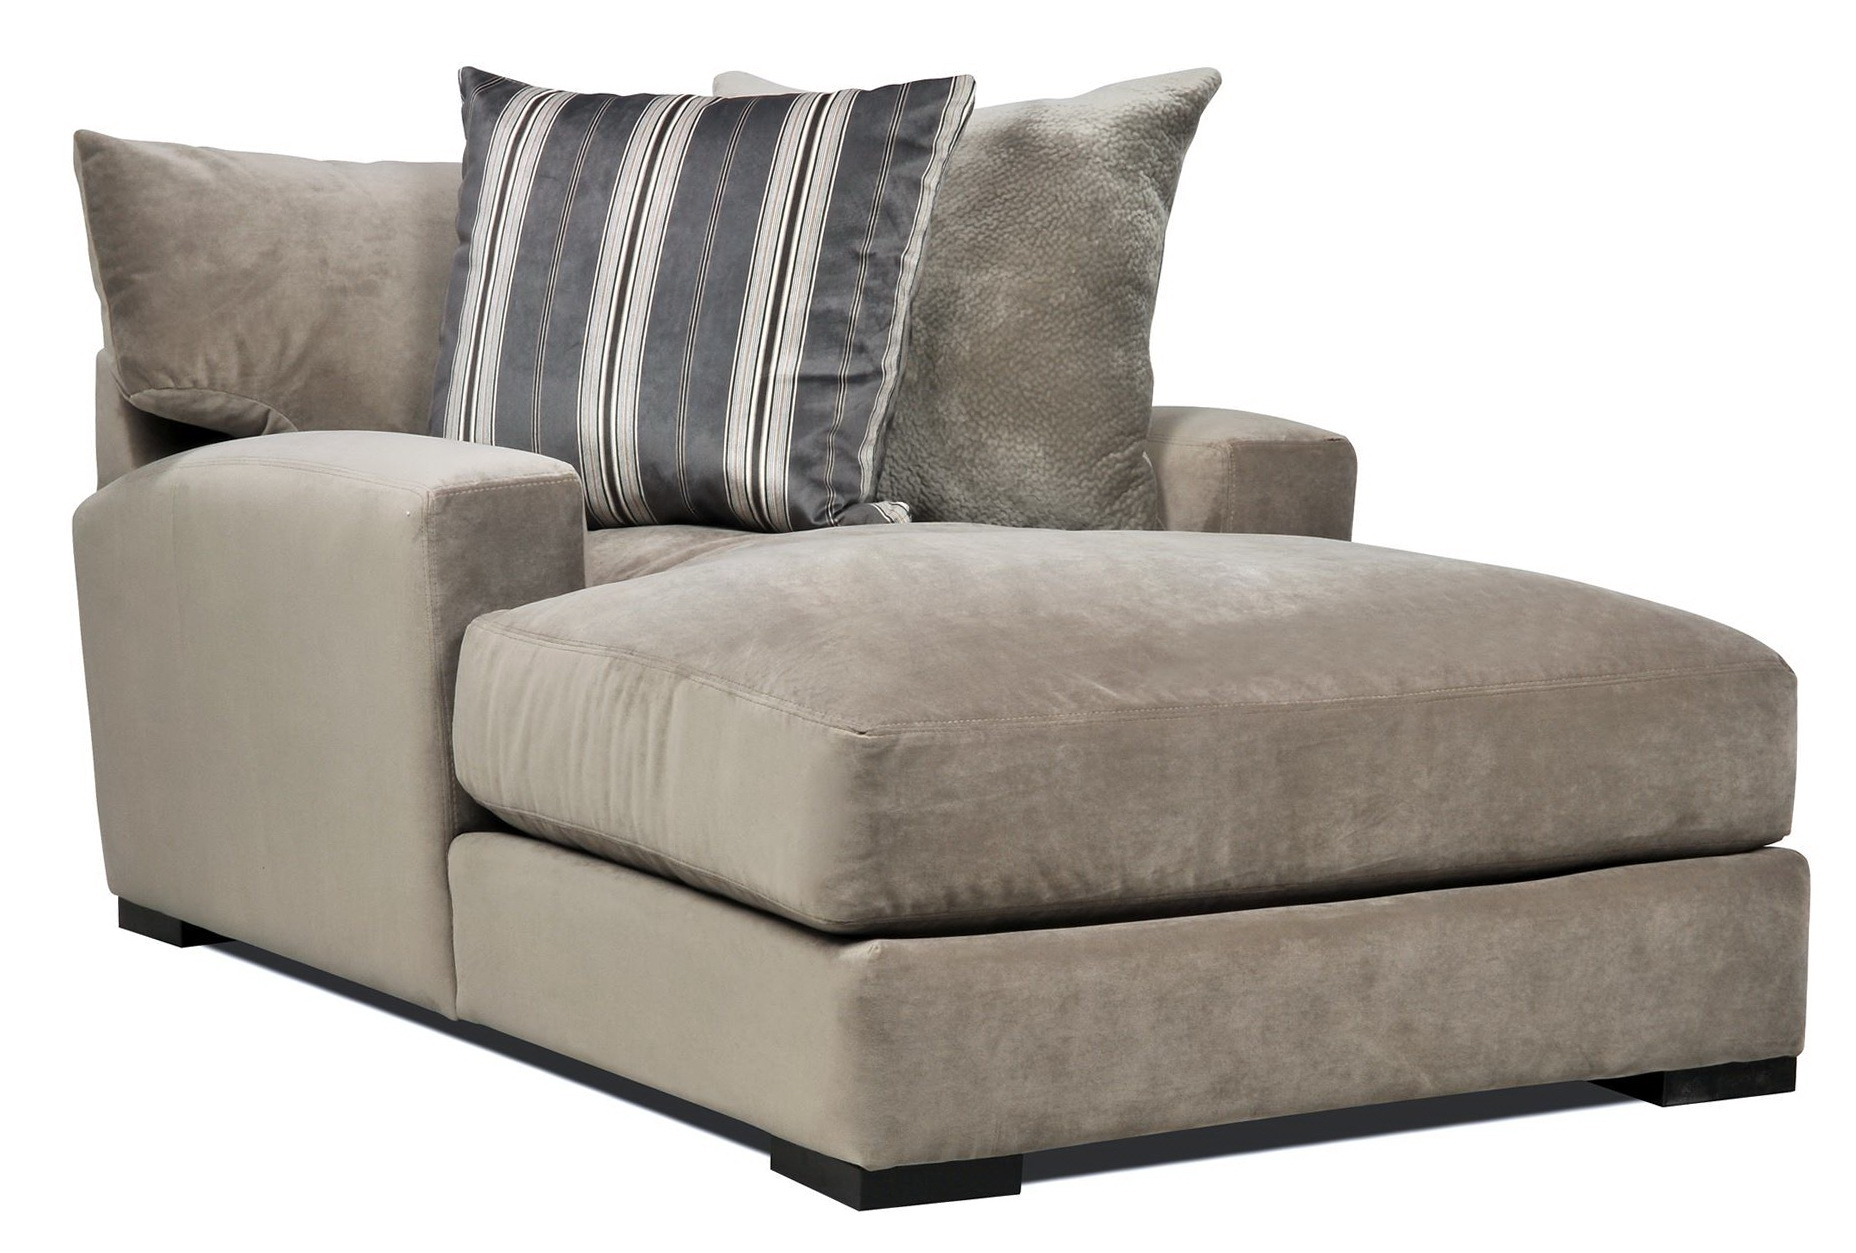 Chaise Couch Lounges Throughout 2018 Double Wide Chaise Lounge Indoor With 2 Cushions (View 14 of 15)